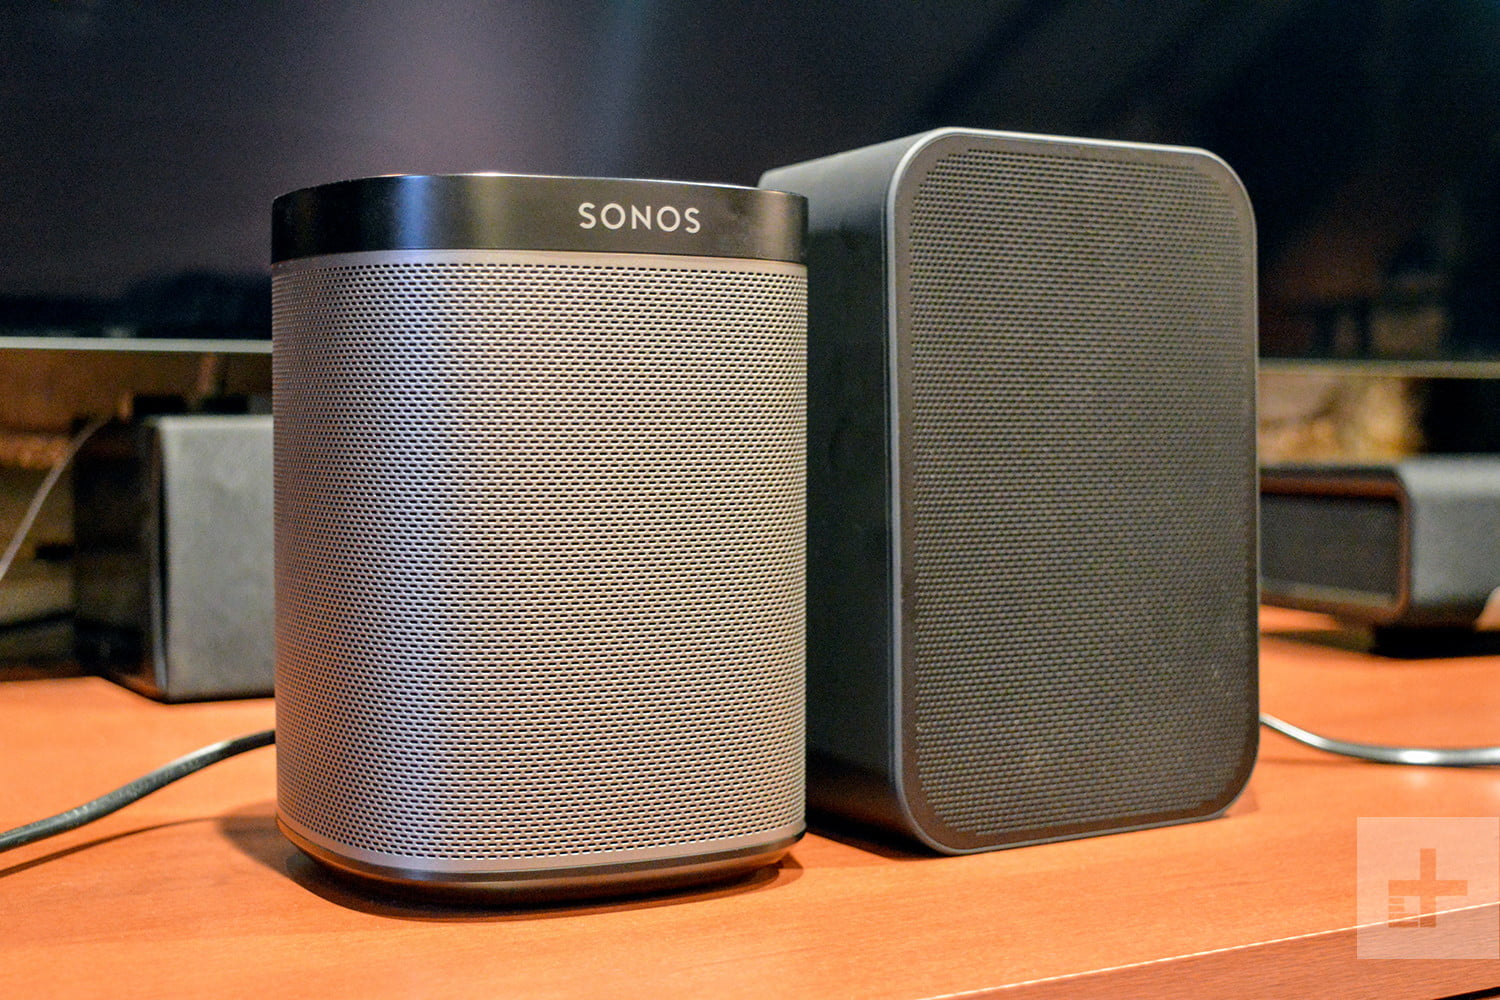 Sonos Vs Bluesound A Hi Fi Wi Speaker System Shootout Subwoofers Will Consistent Power To Both Maximizing Your Digital Trends